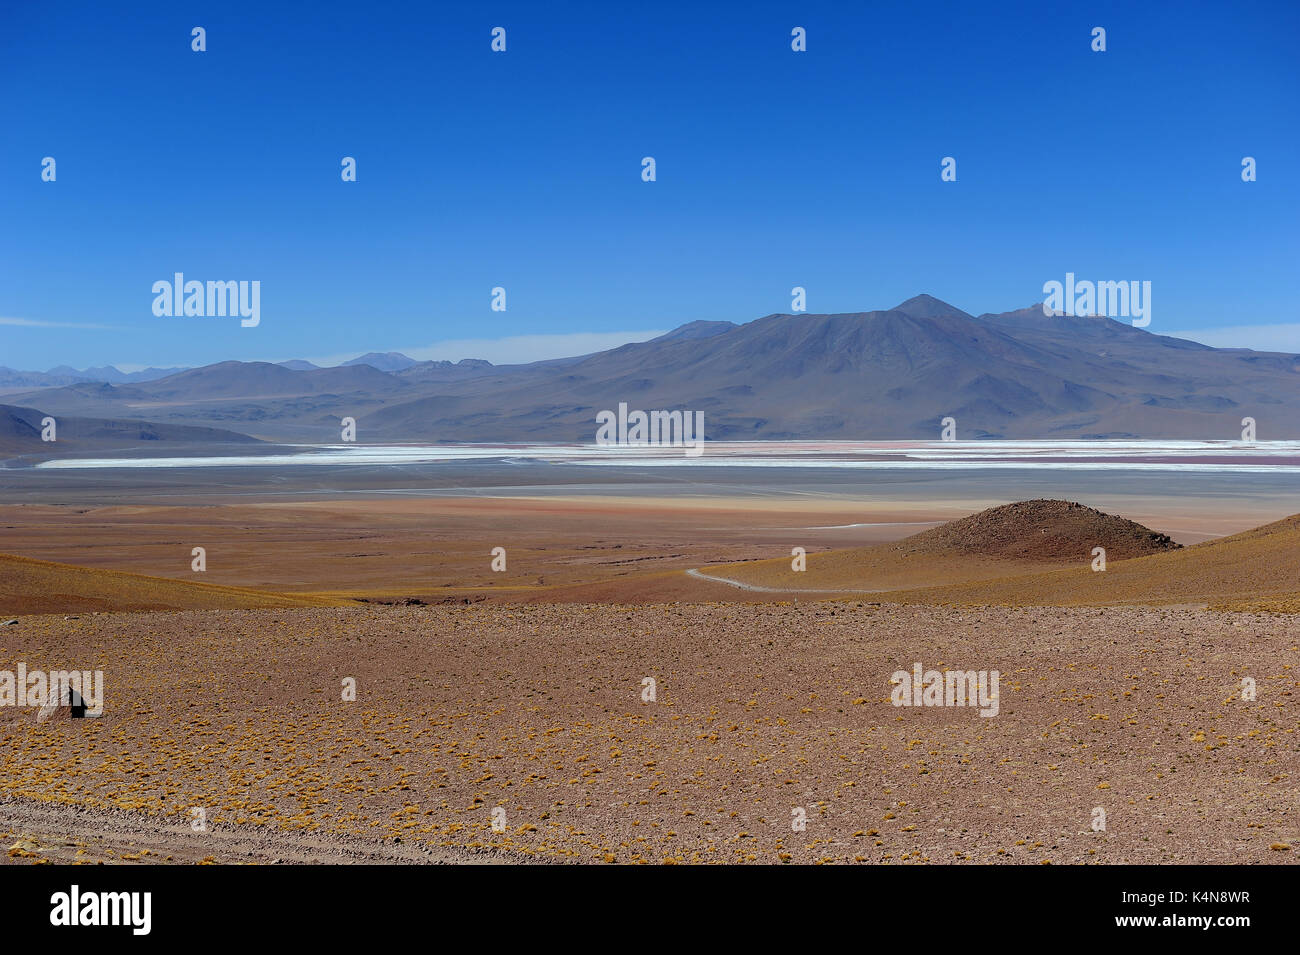 The desertic landscape of Southern Bolivia with the Laguna Colorada in the distance - Stock Image